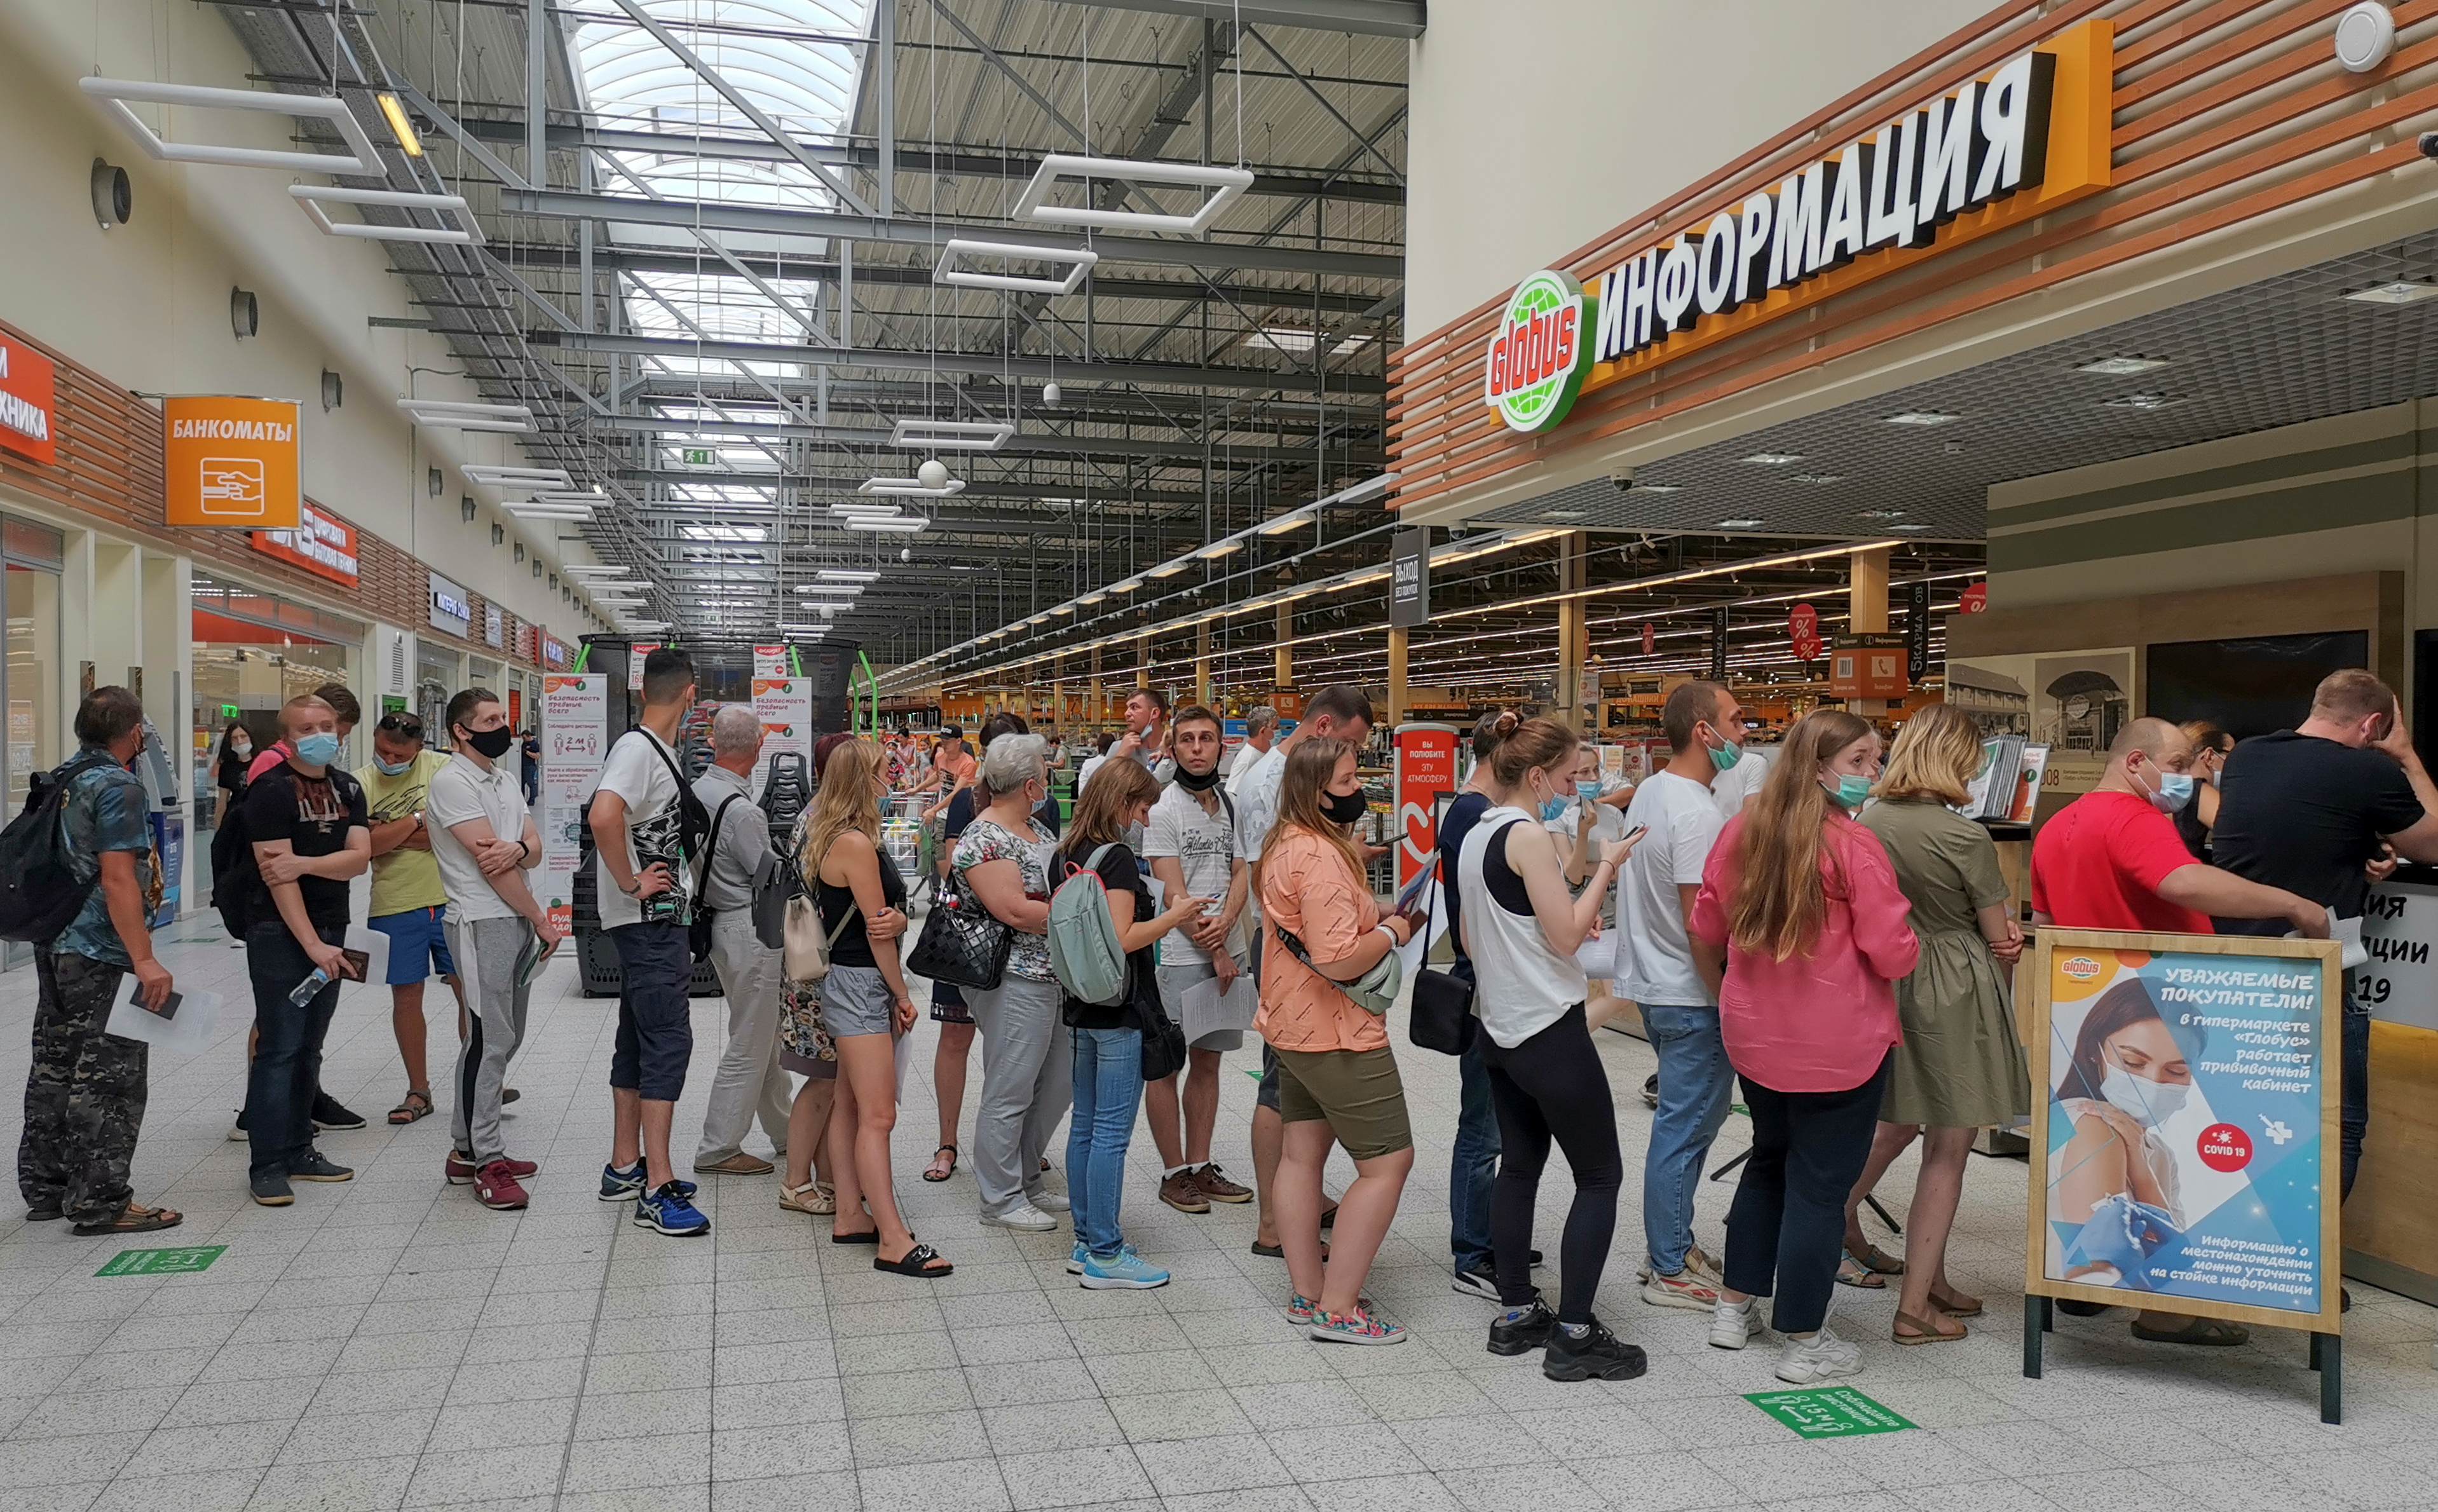 People line up to receive vaccine against the coronavirus disease (COVID-19) at a vaccination centre in the Globus shopping mall in Vladimir, Russia July 15, 2021. Picture taken July 15, 2021.  REUTERS/Polina Nikolskaya